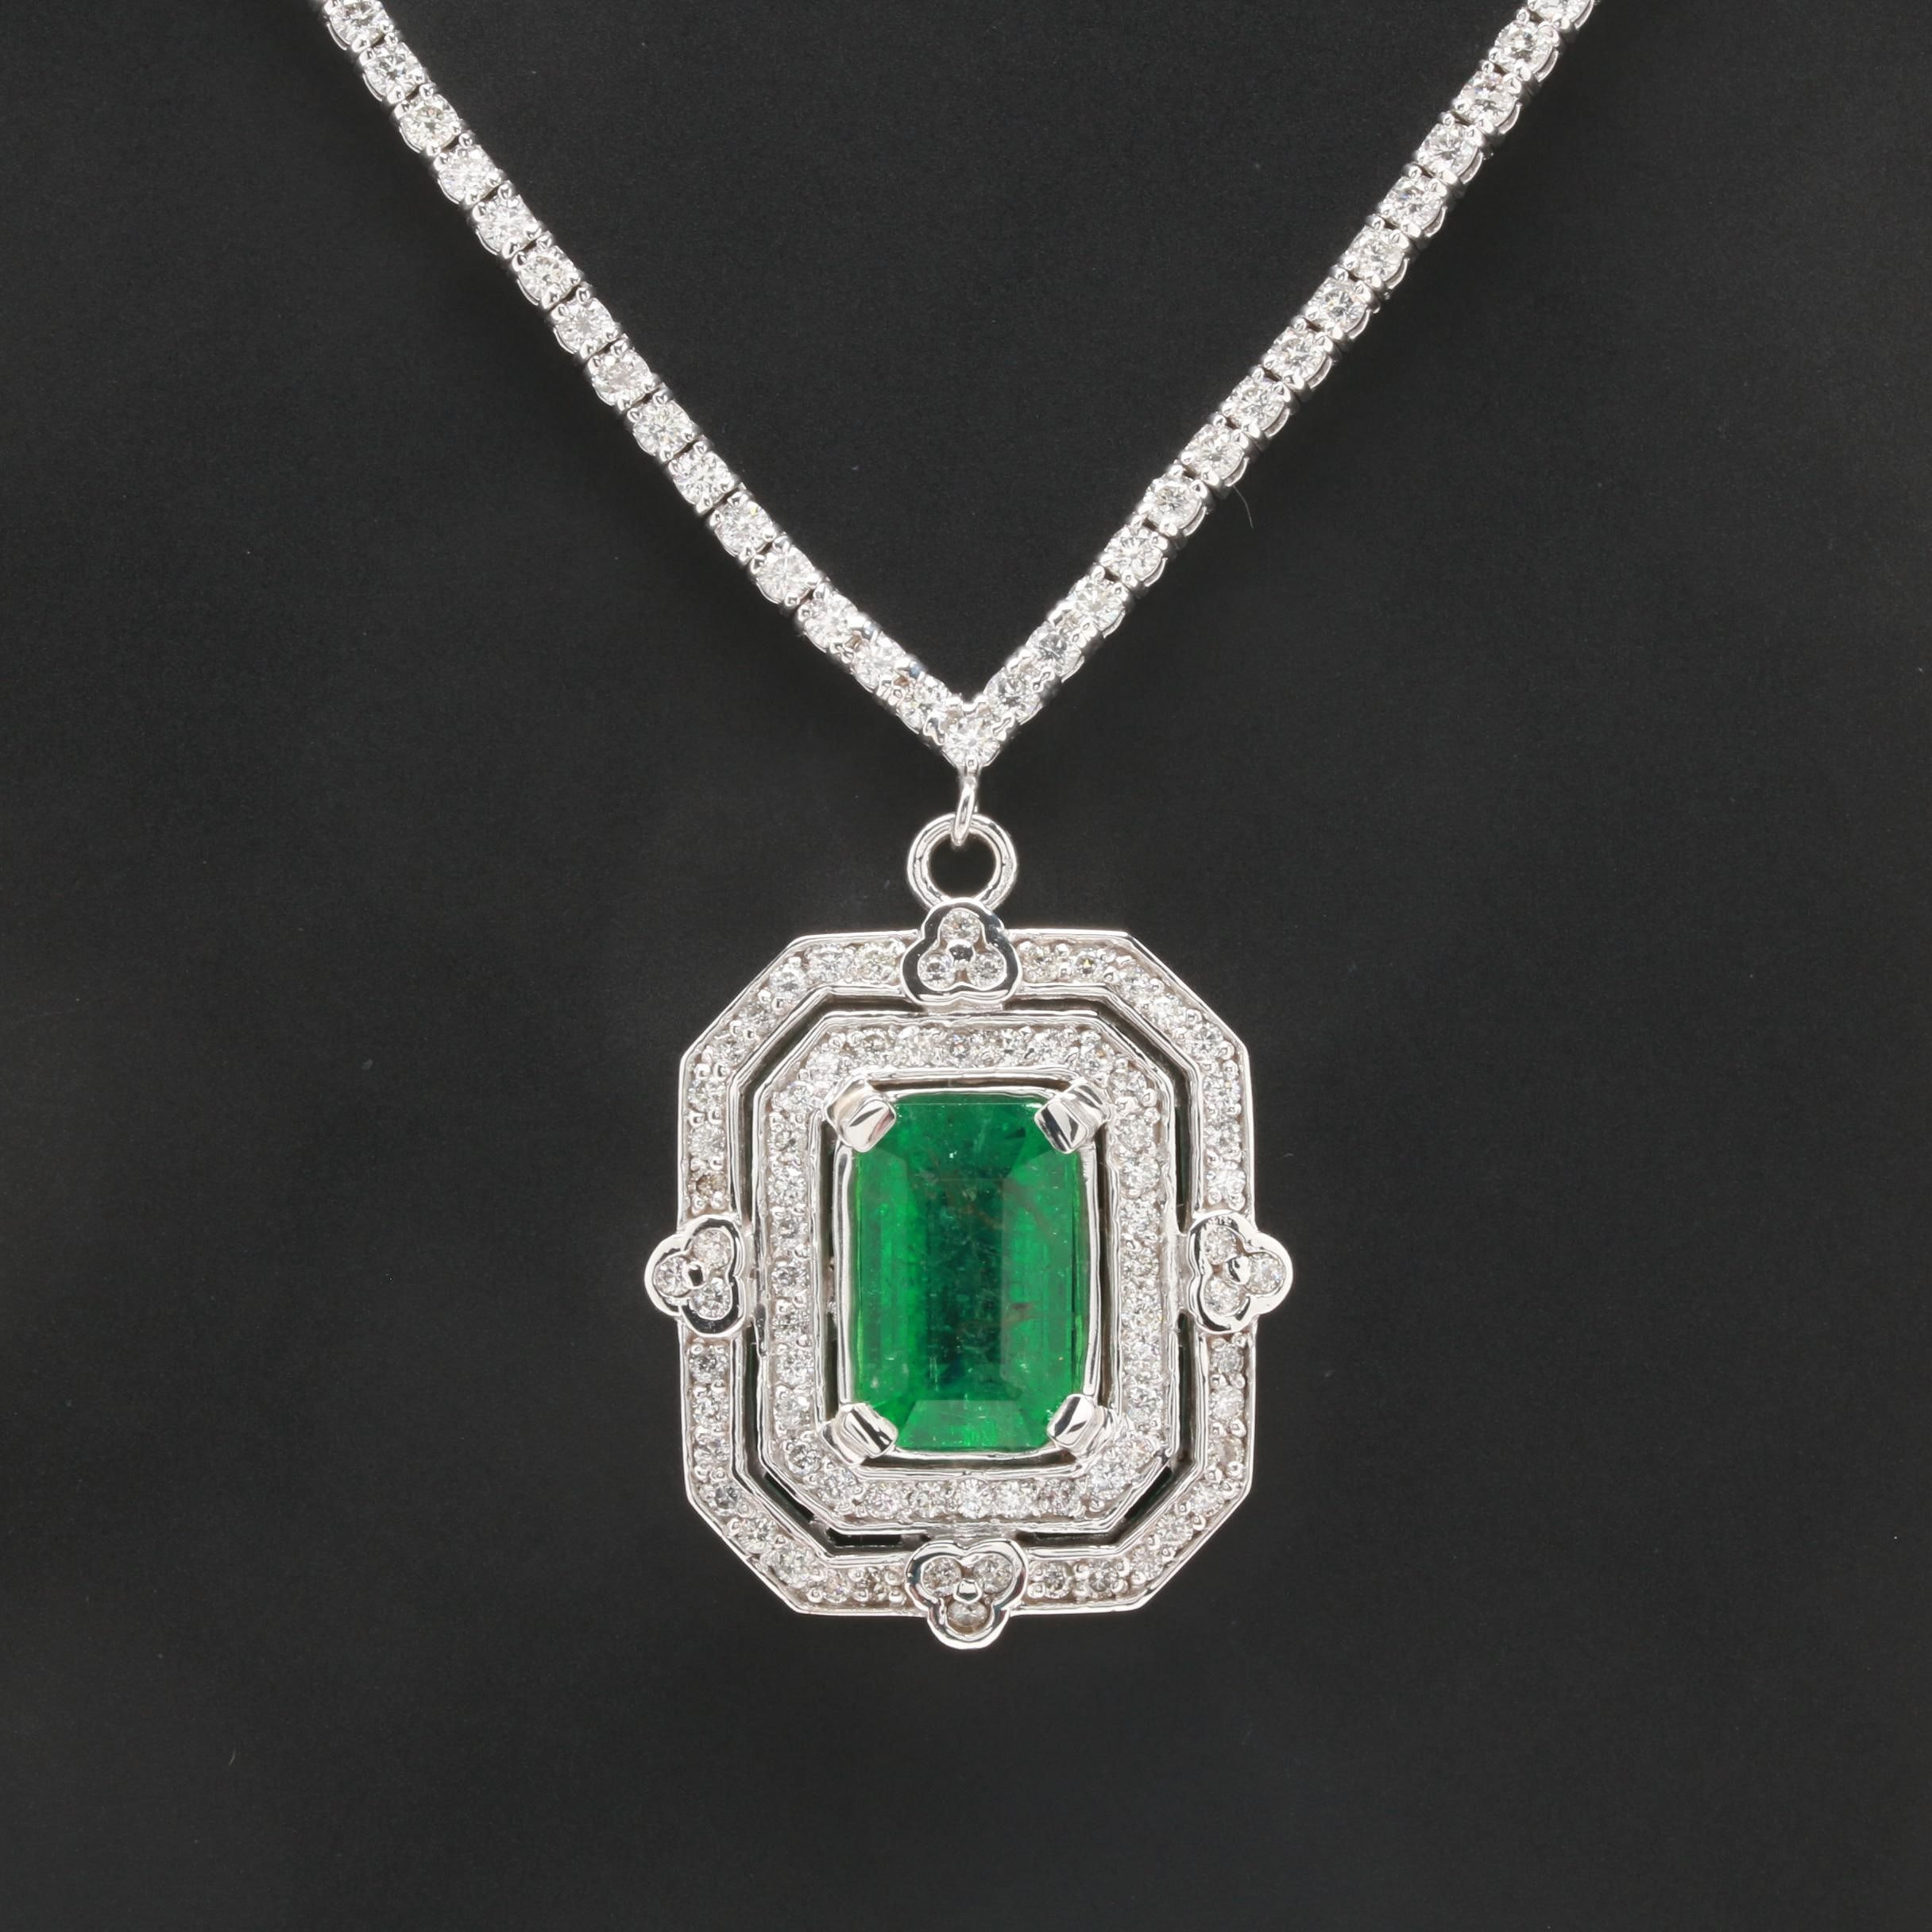 14K and 18K White Gold 4.00 CT Emerald and 3.77 CTW Diamond Pendant Necklace